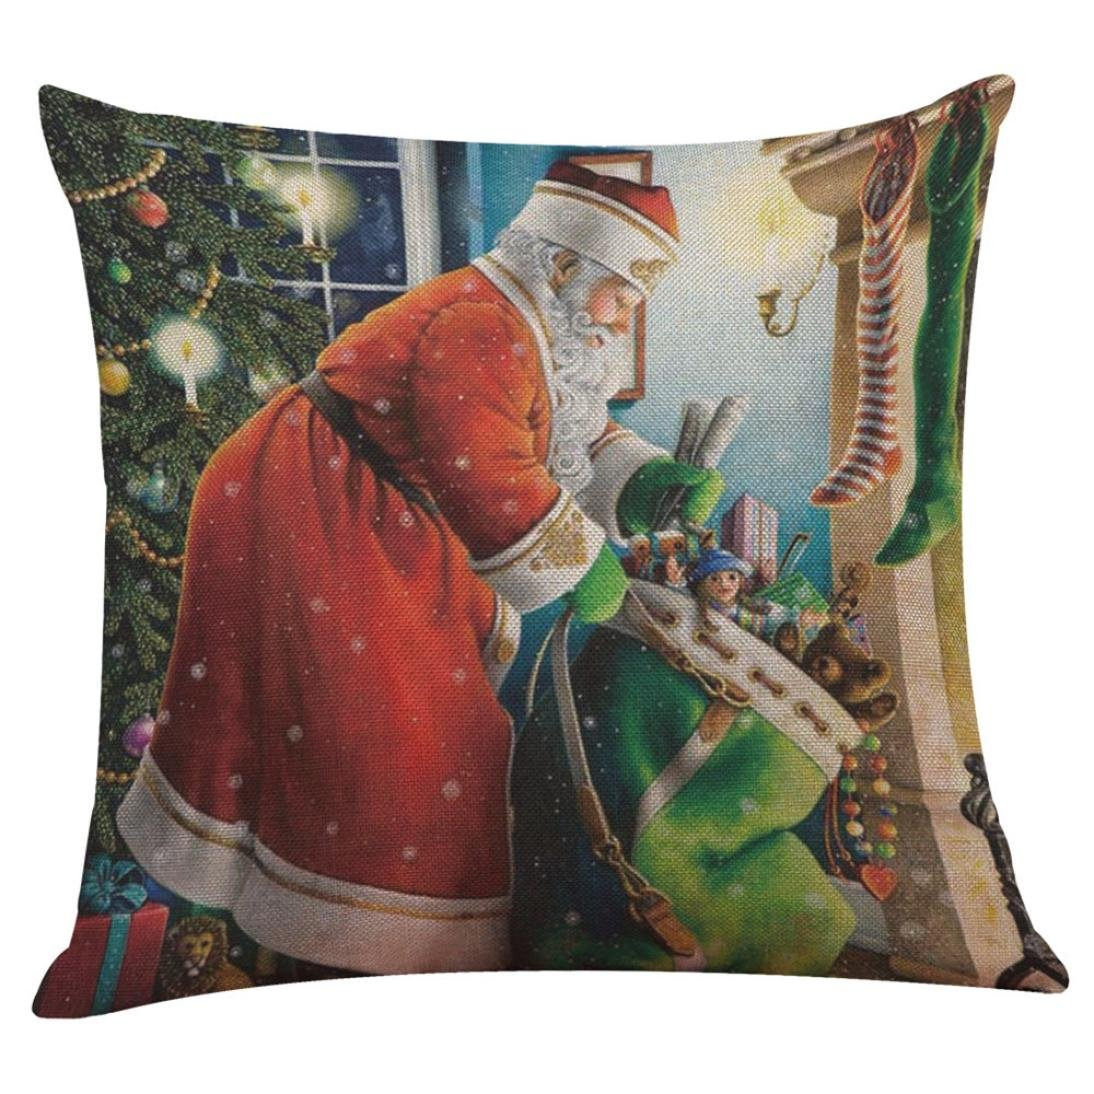 Wqueen Christmas Pillow CaseChristmas Linen Square Throw Flax Pillow- Case Decorative Cushion Pillow Cover (5H)